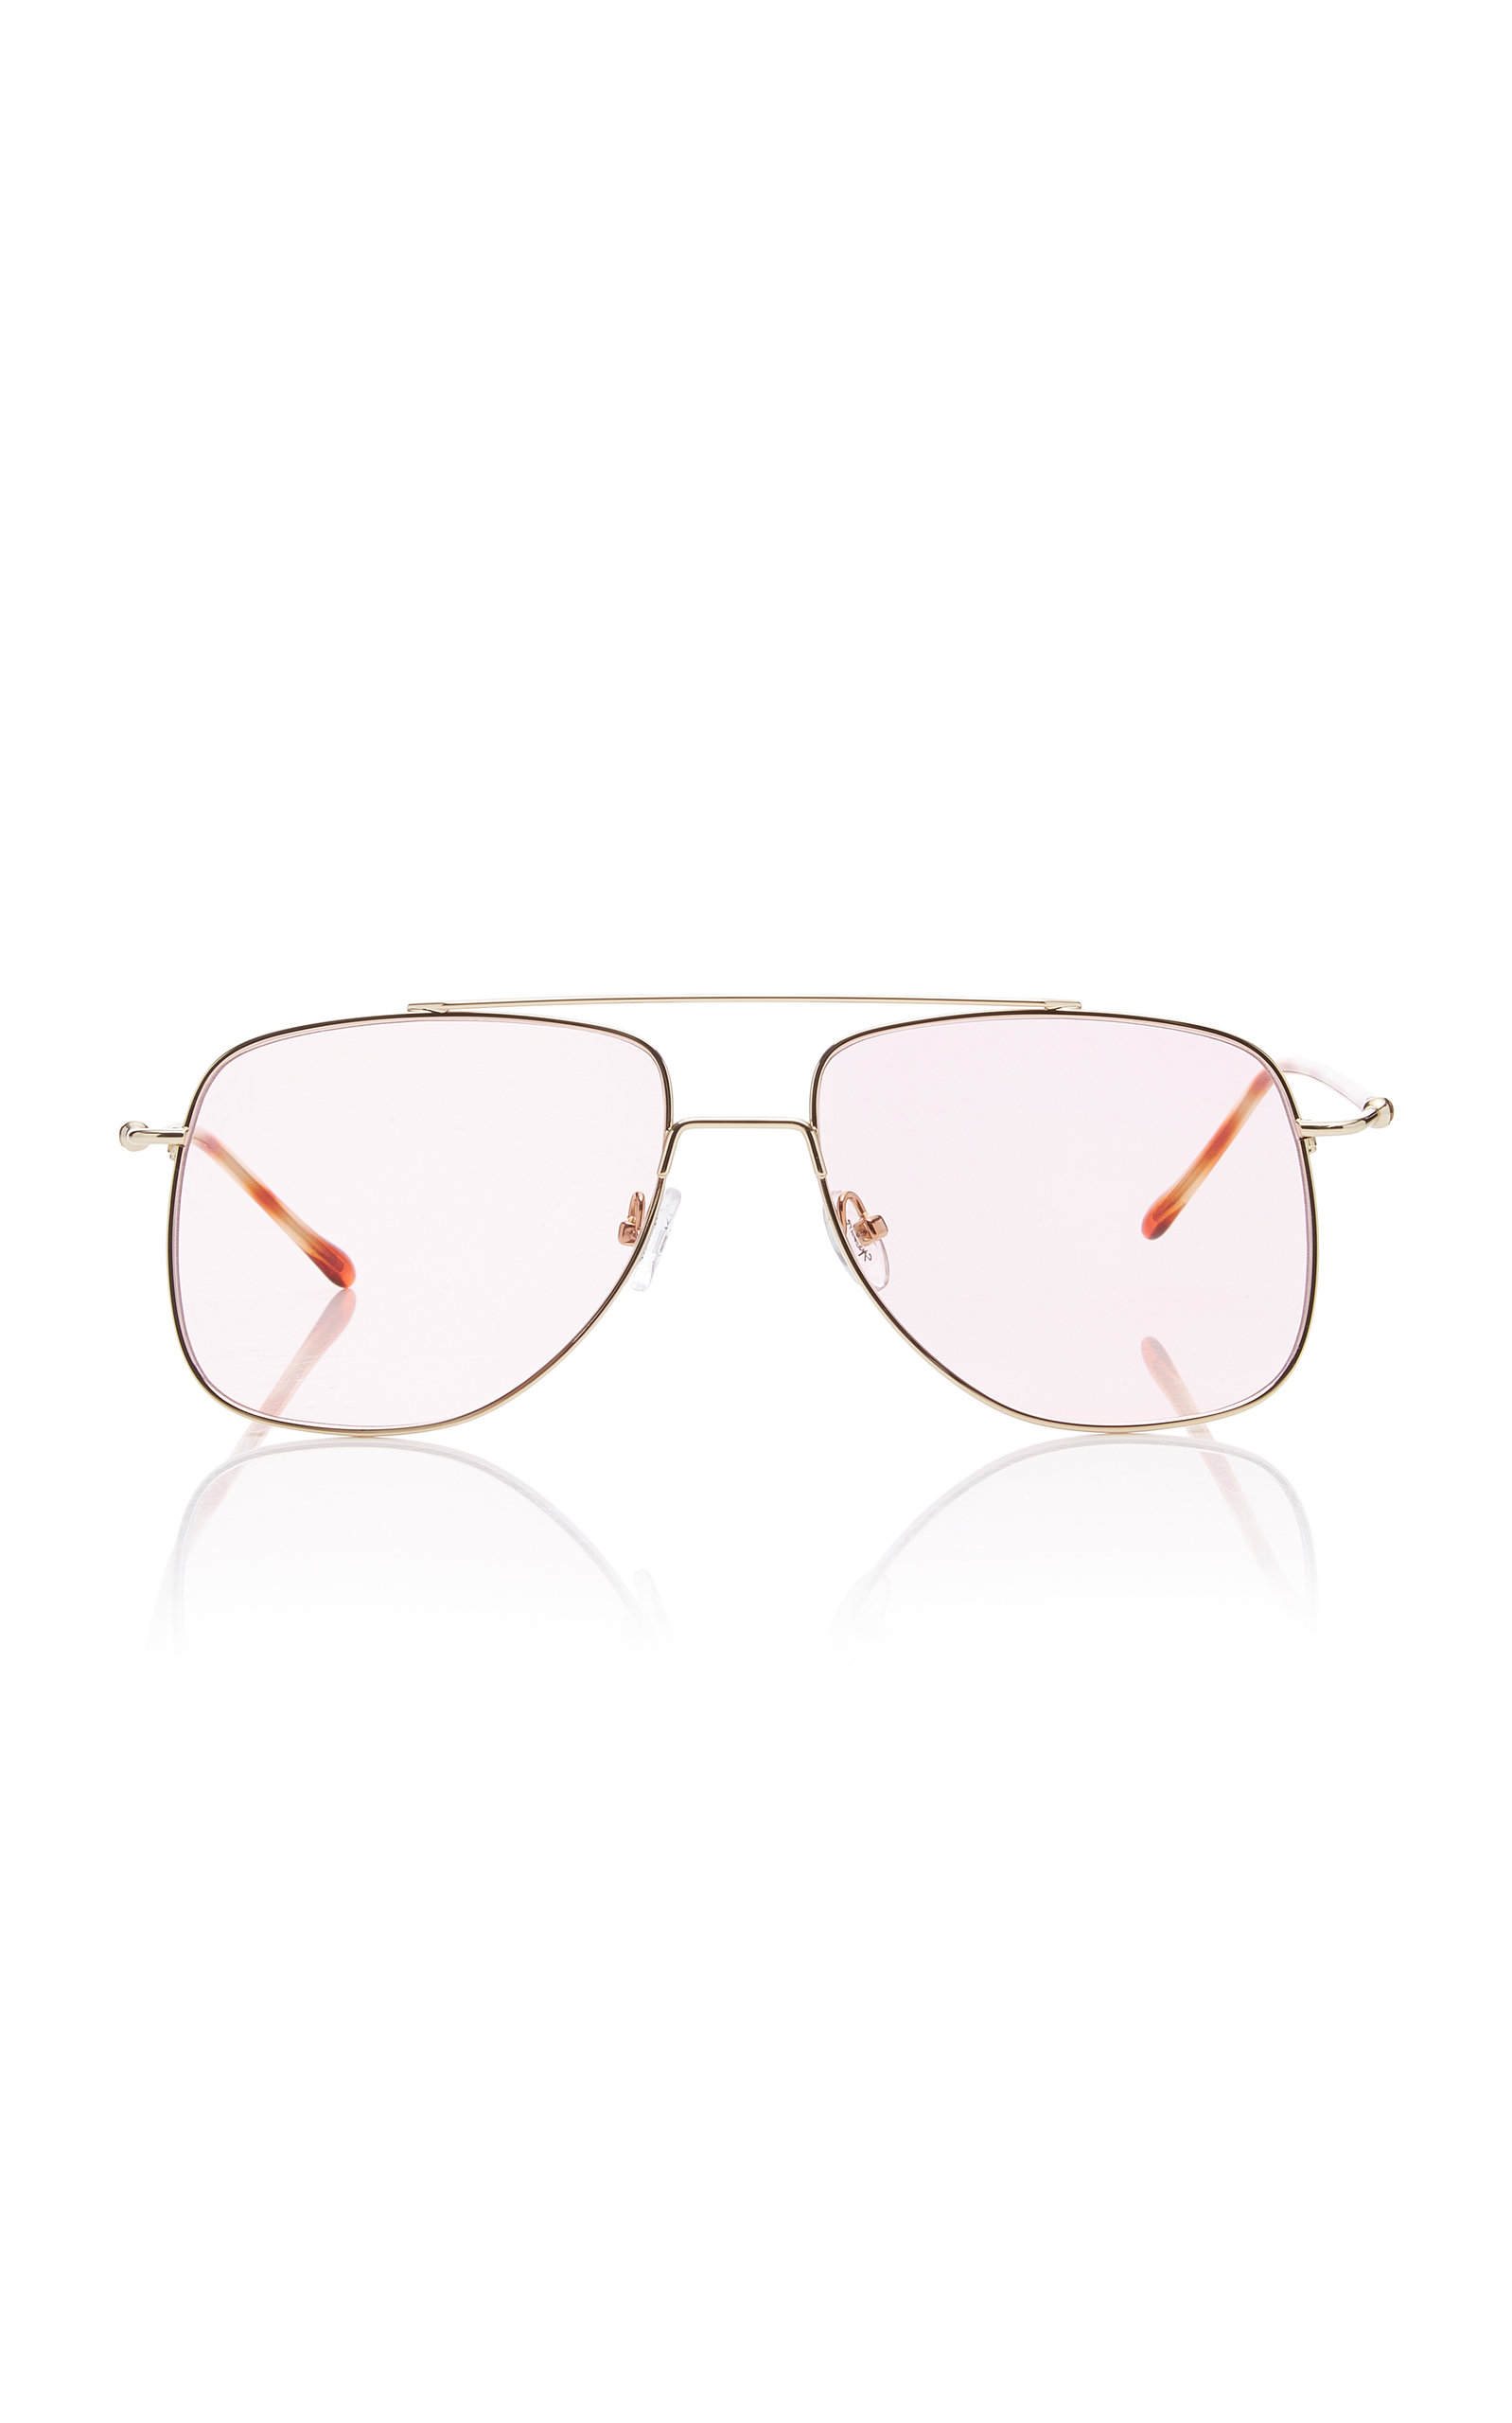 34266d7cd Spektre Maranello Aviator-Style Silver-Tone Sunglasses In Pink ...